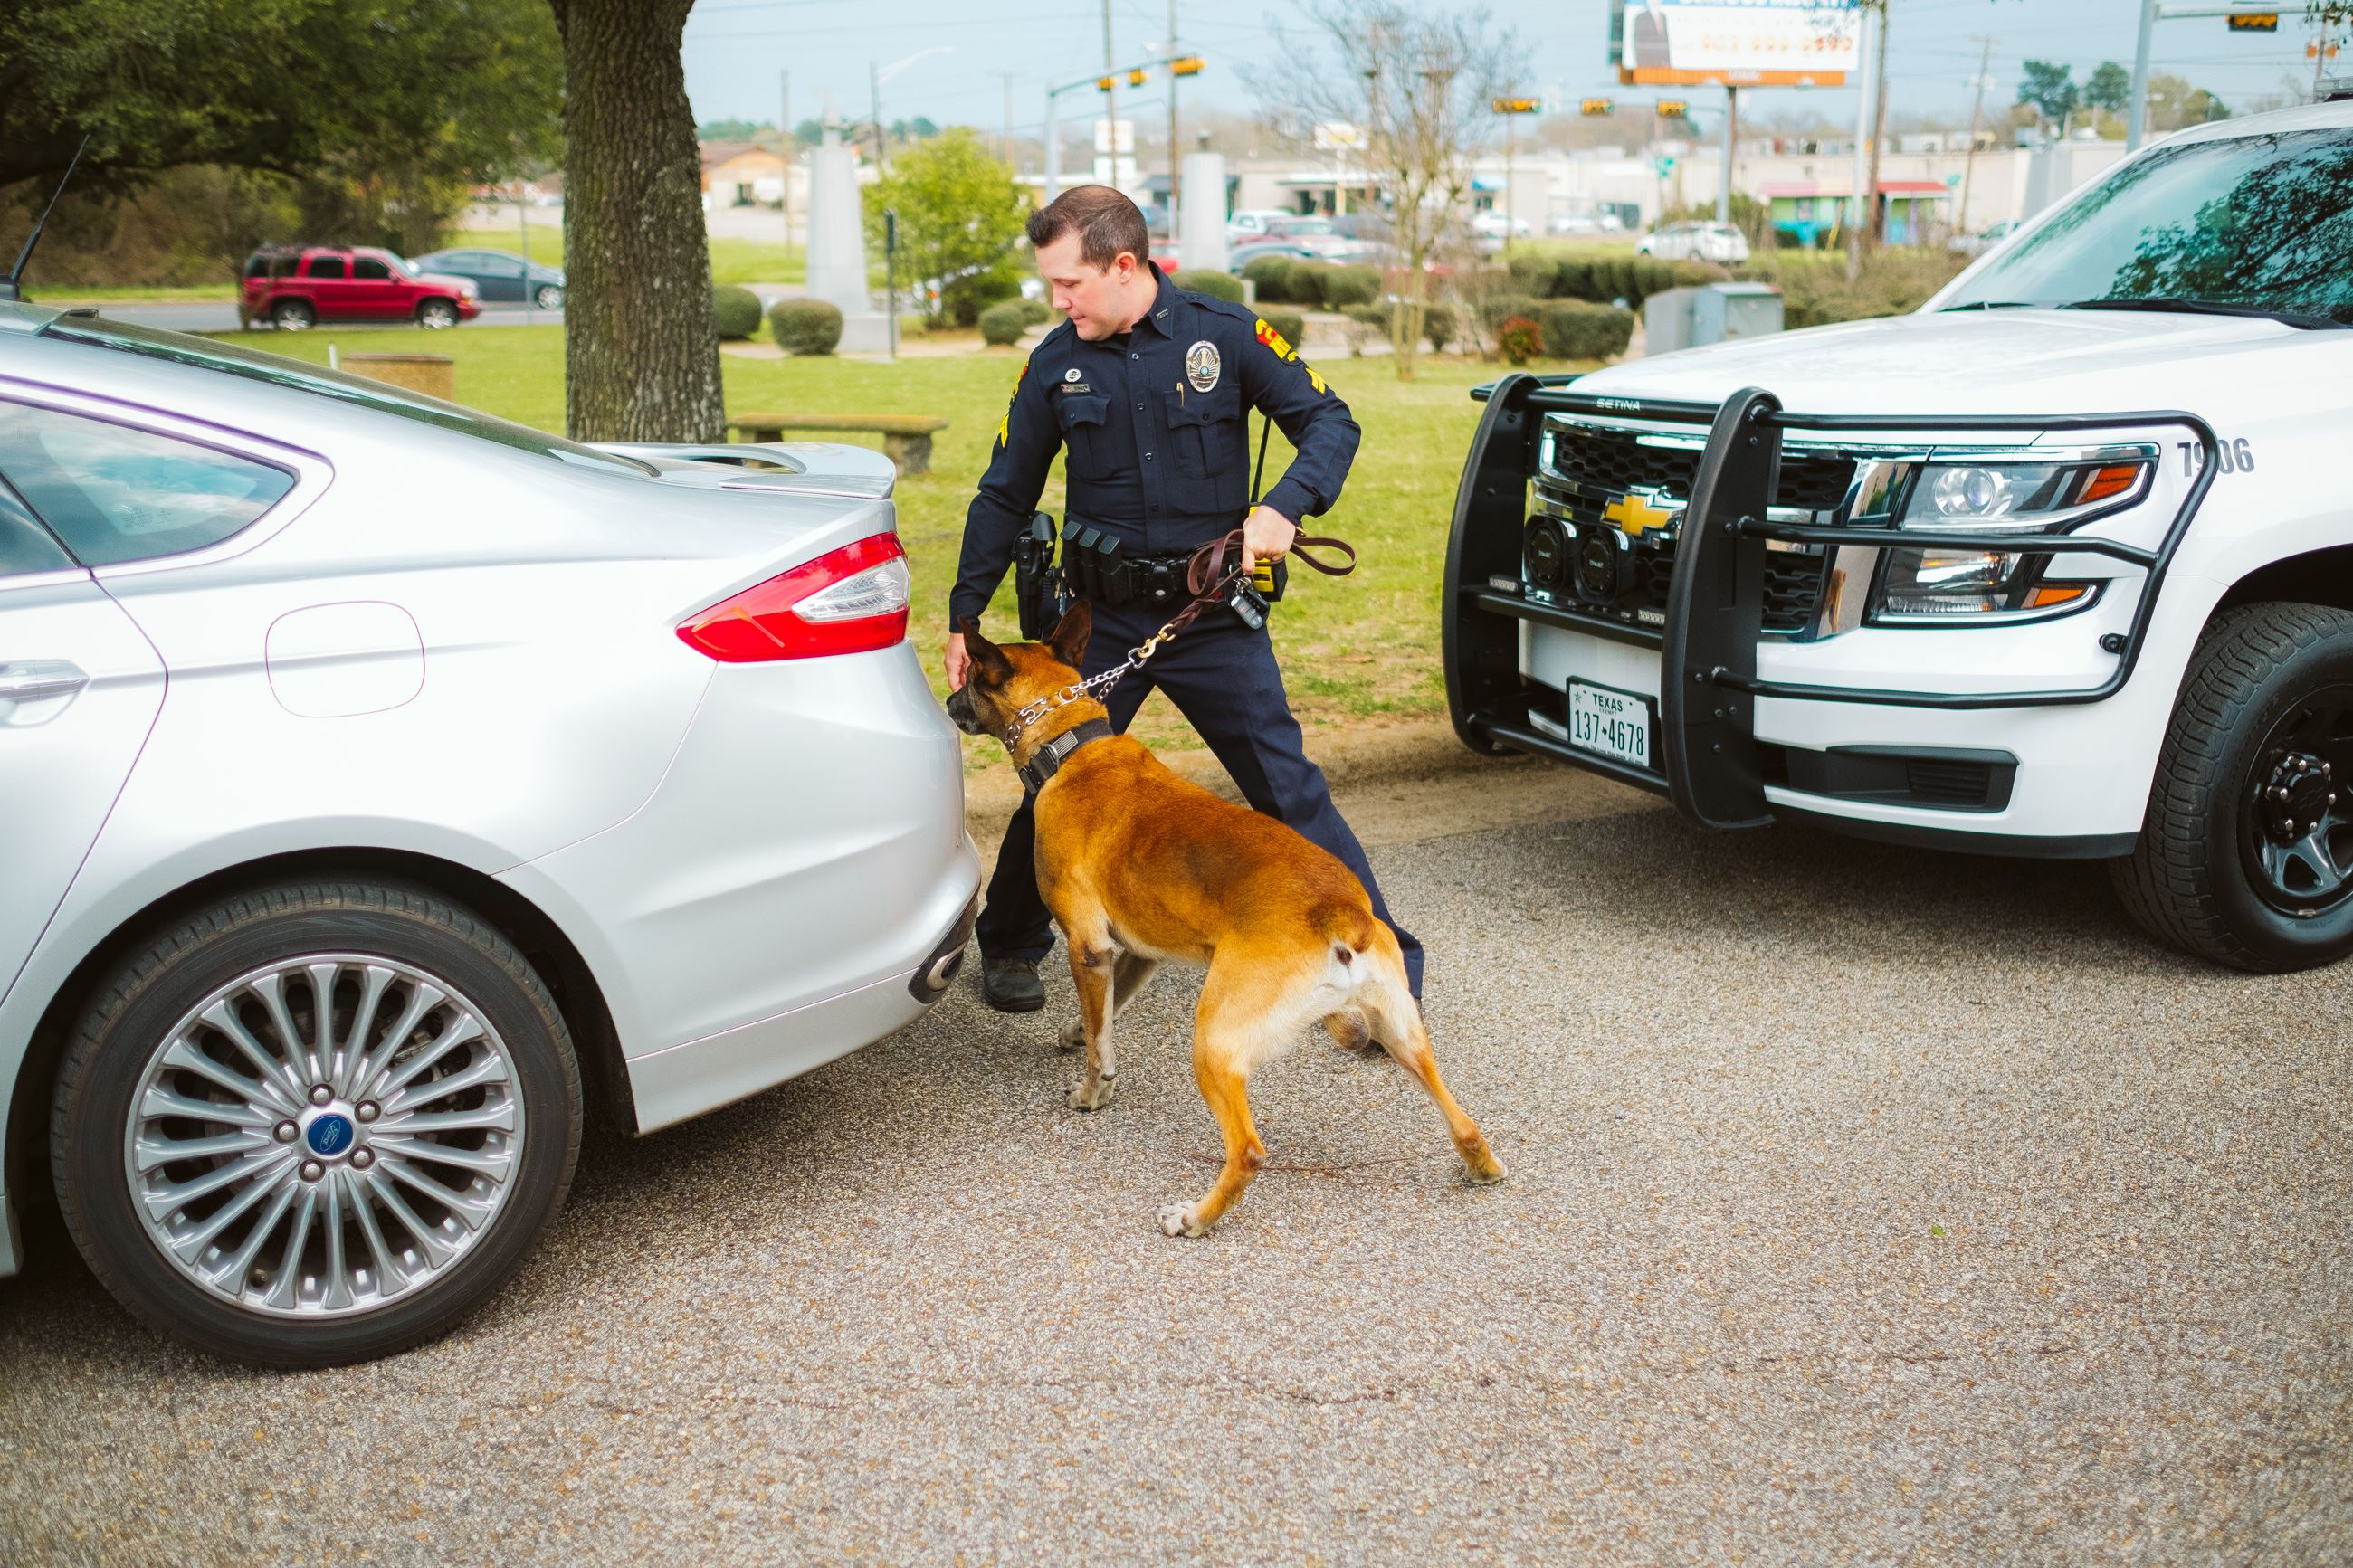 Police canine with handler conducting vehicle sniff